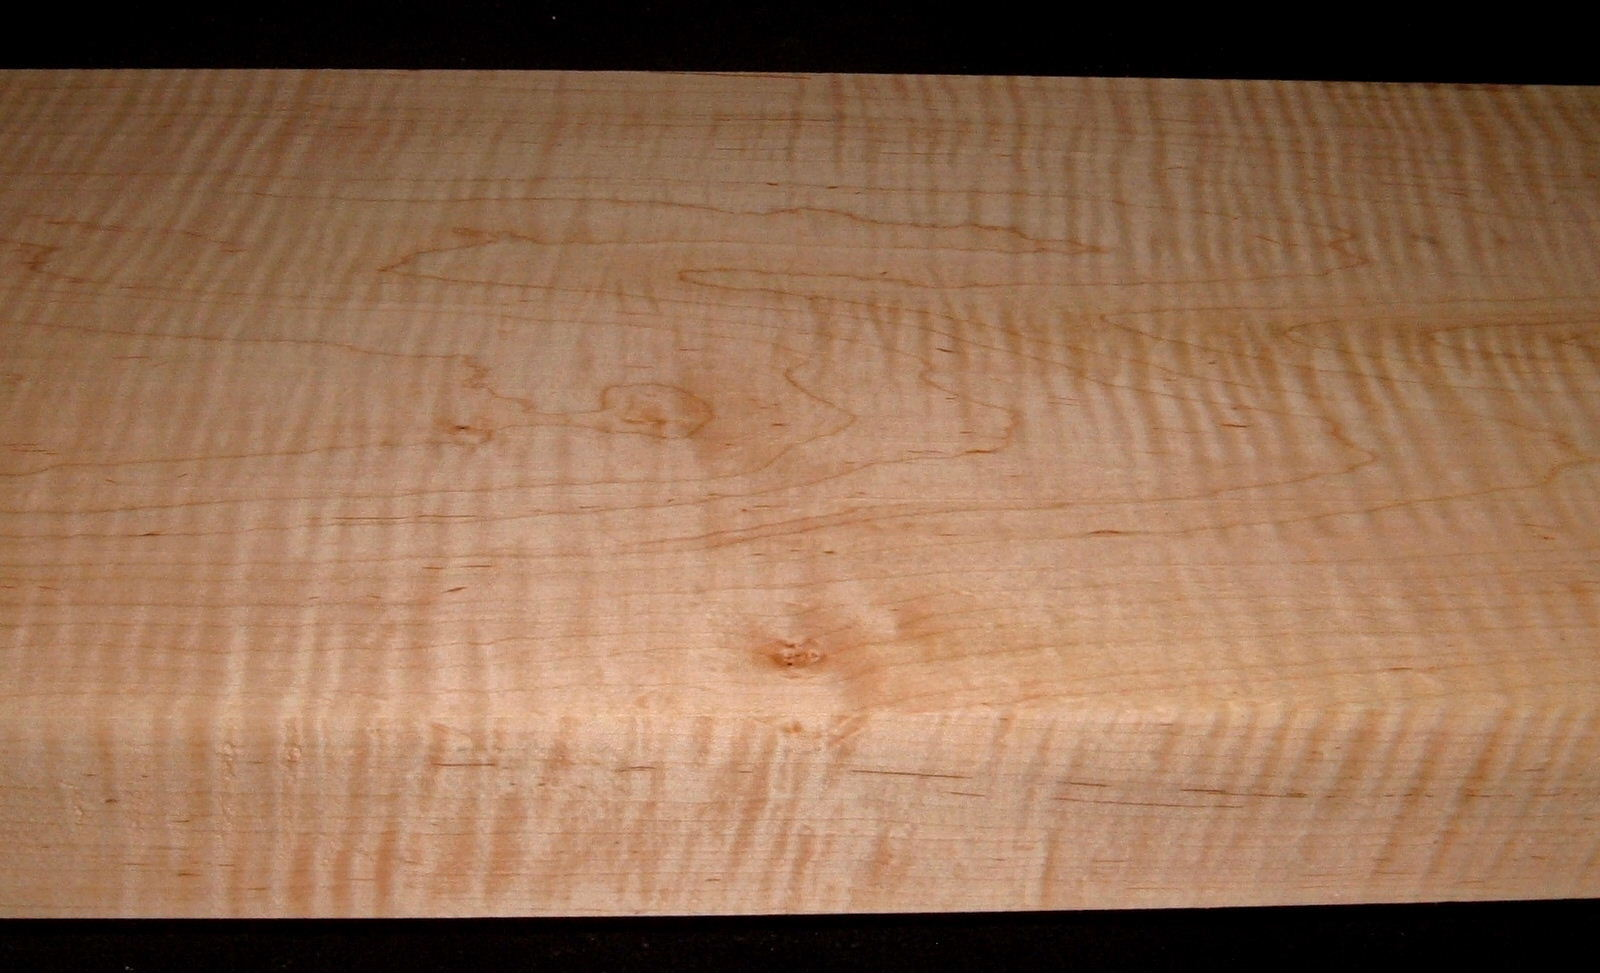 M2104-300, 2-3/4x13-1/4x53, 12/4 Curly Tiger Maple